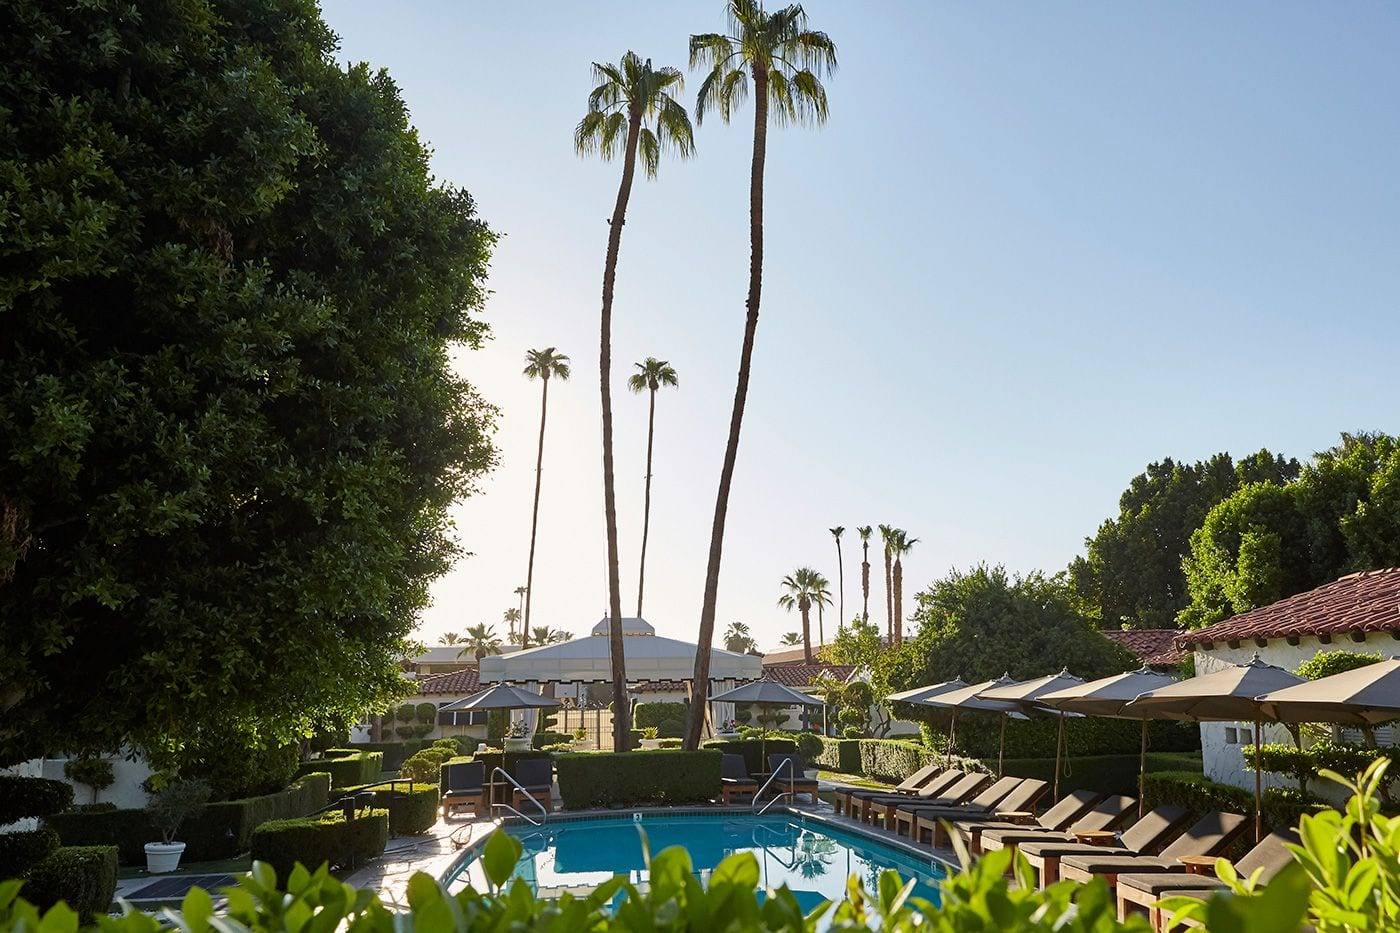 outdoor pool with palm trees at Avalon Hotel